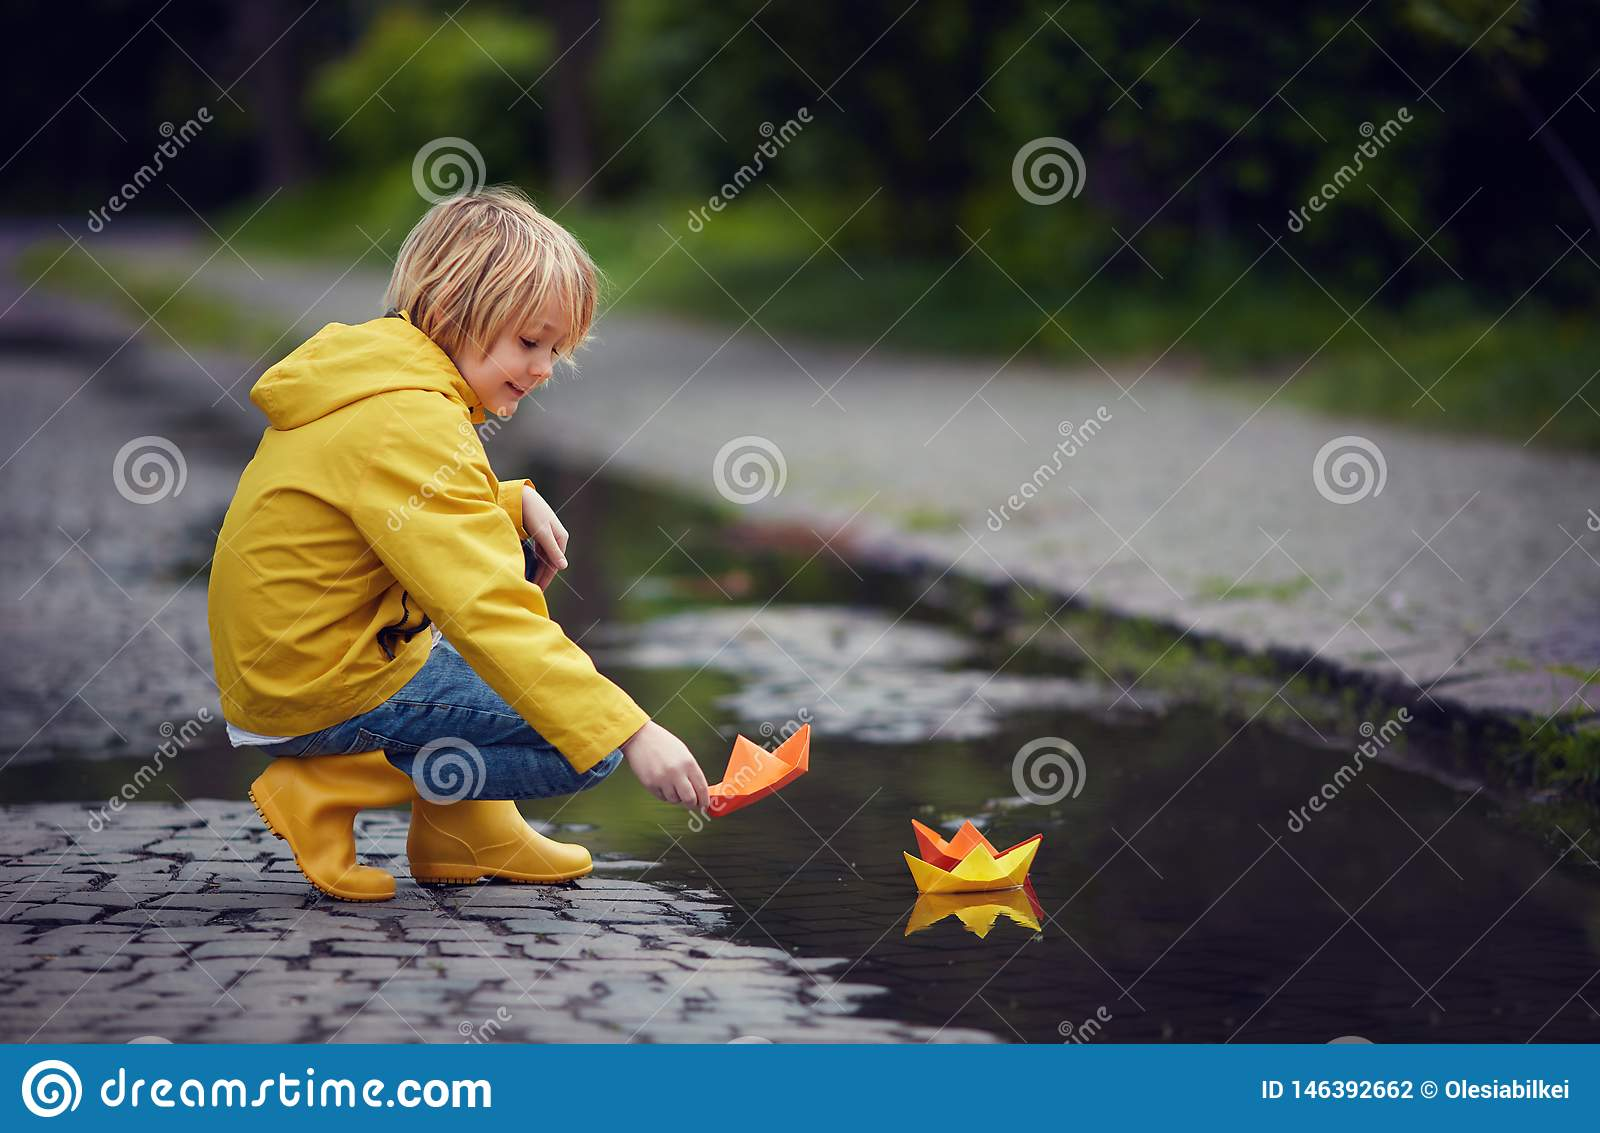 Young boy in rain boots and coat is putting paper boats on the water, at spring rainy day